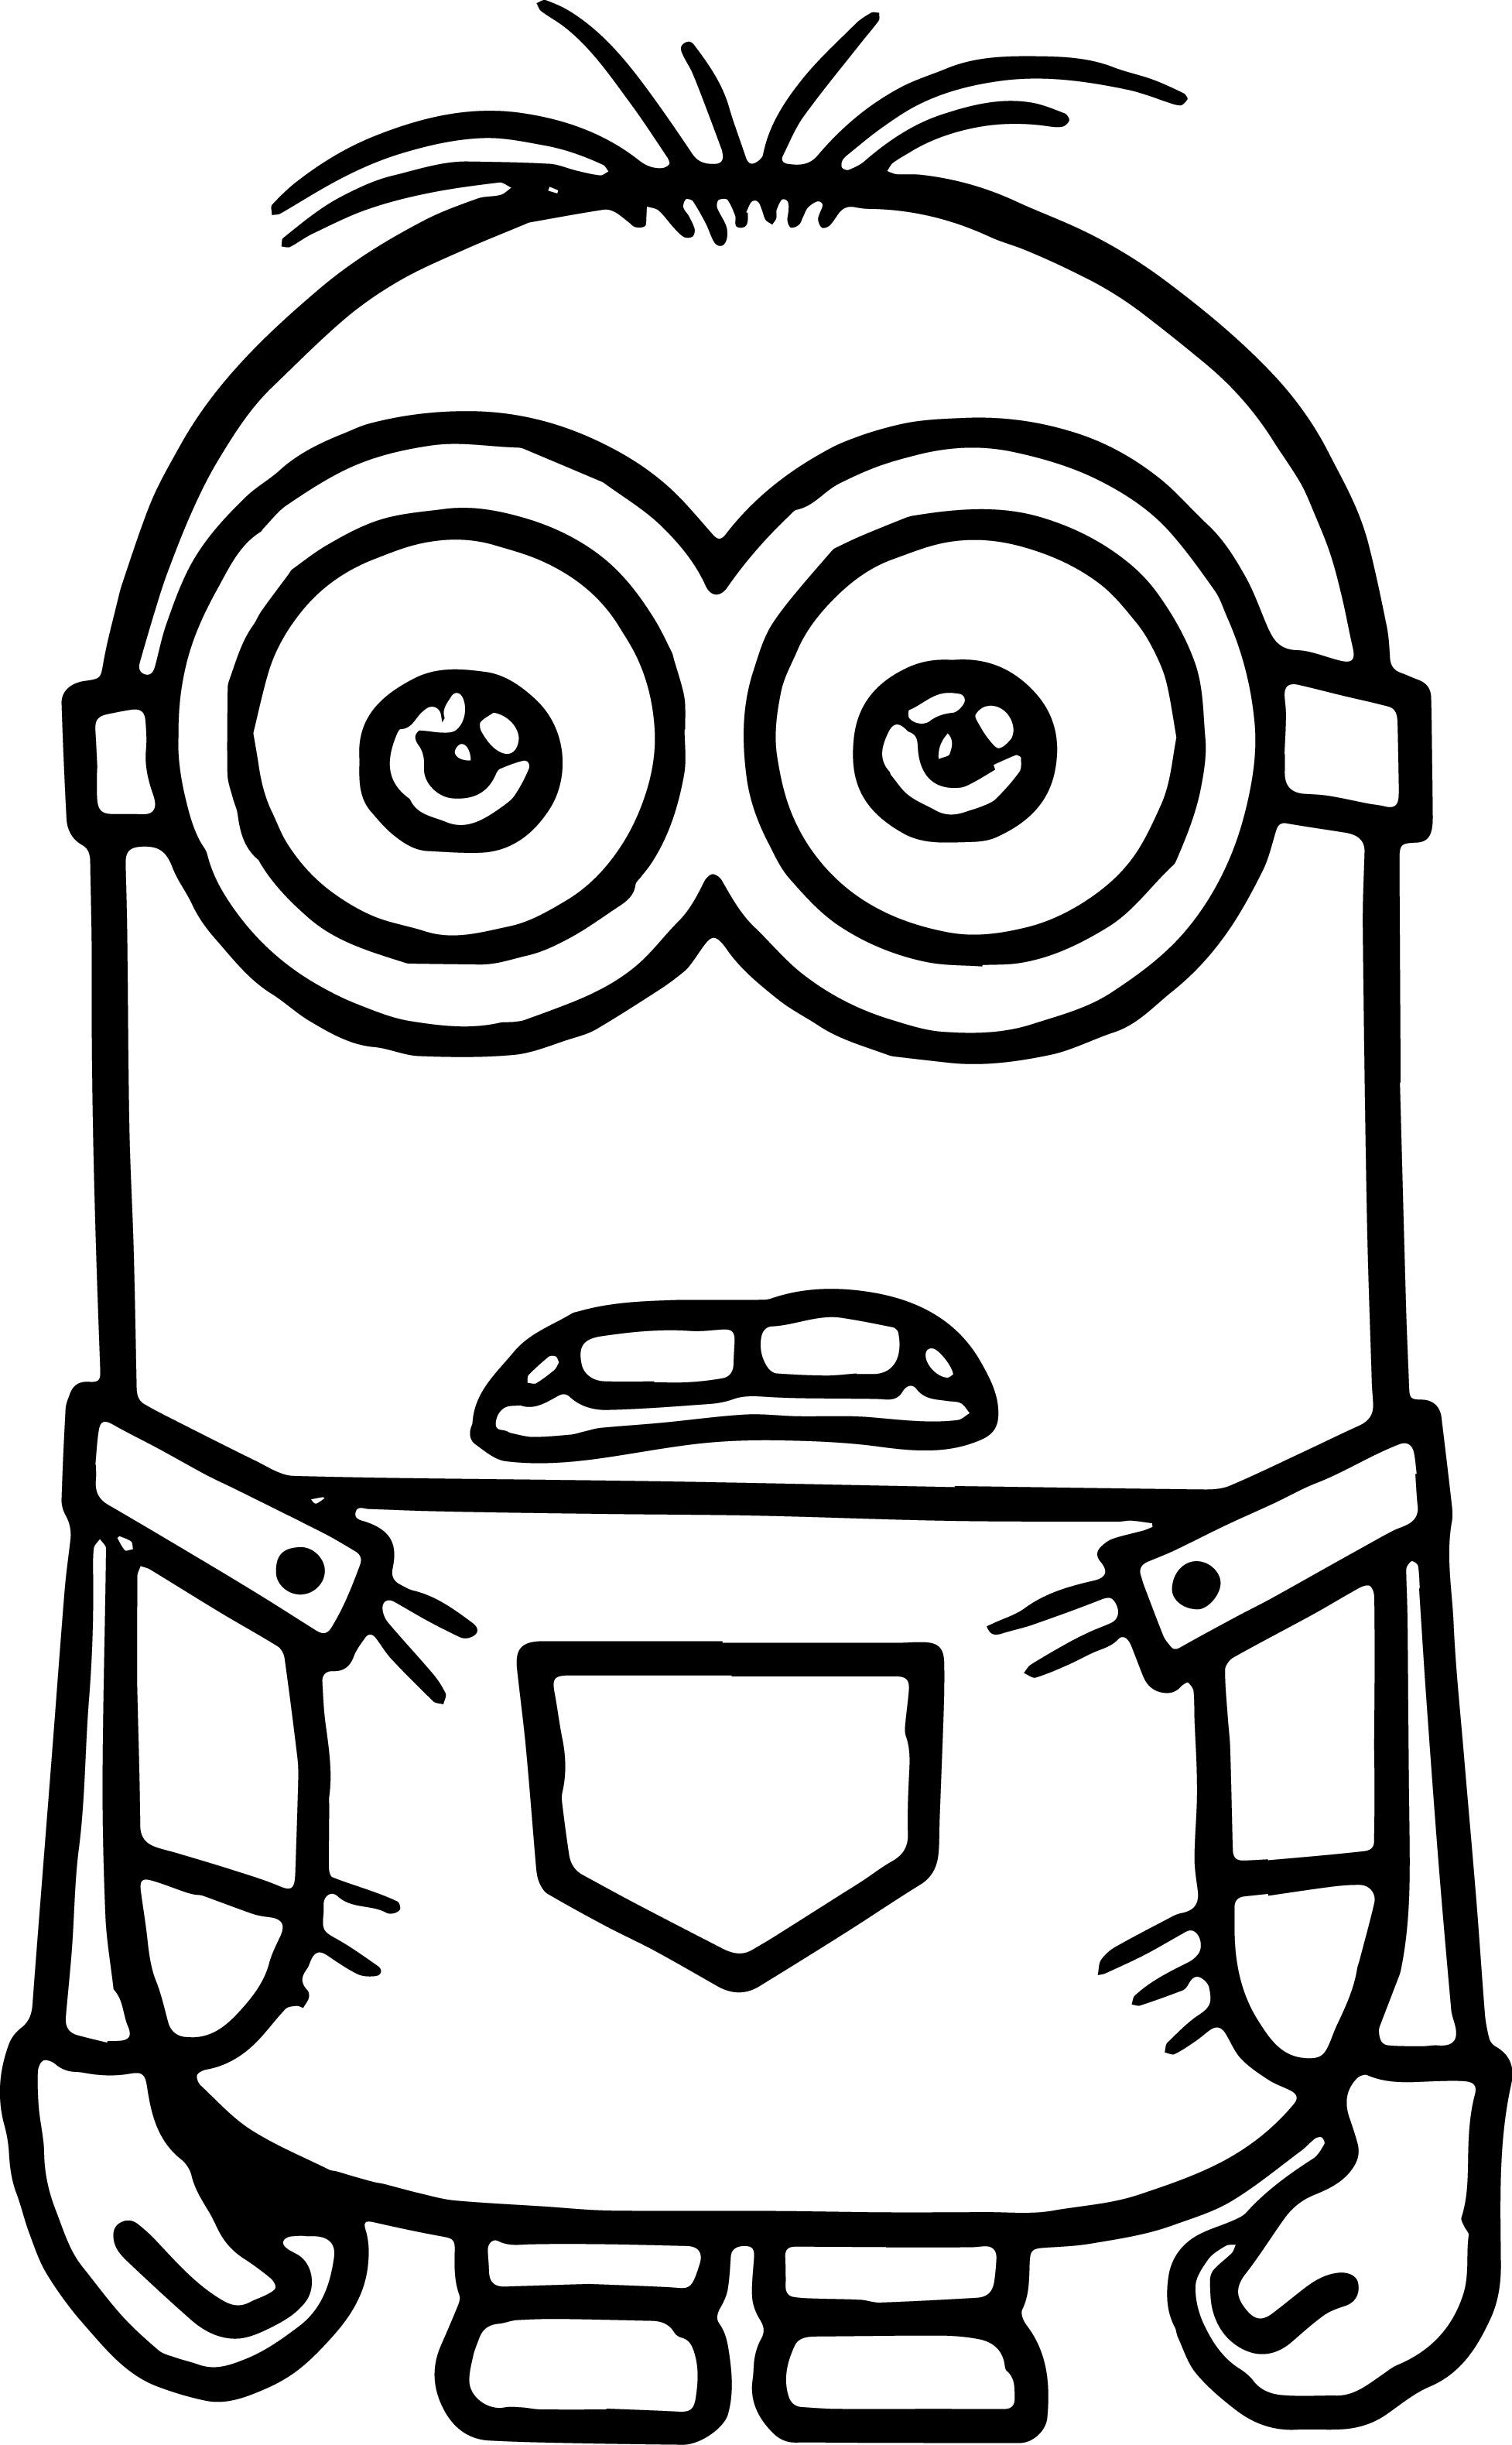 Minions Coloring Pages Minion Coloring Pages Disney Coloring